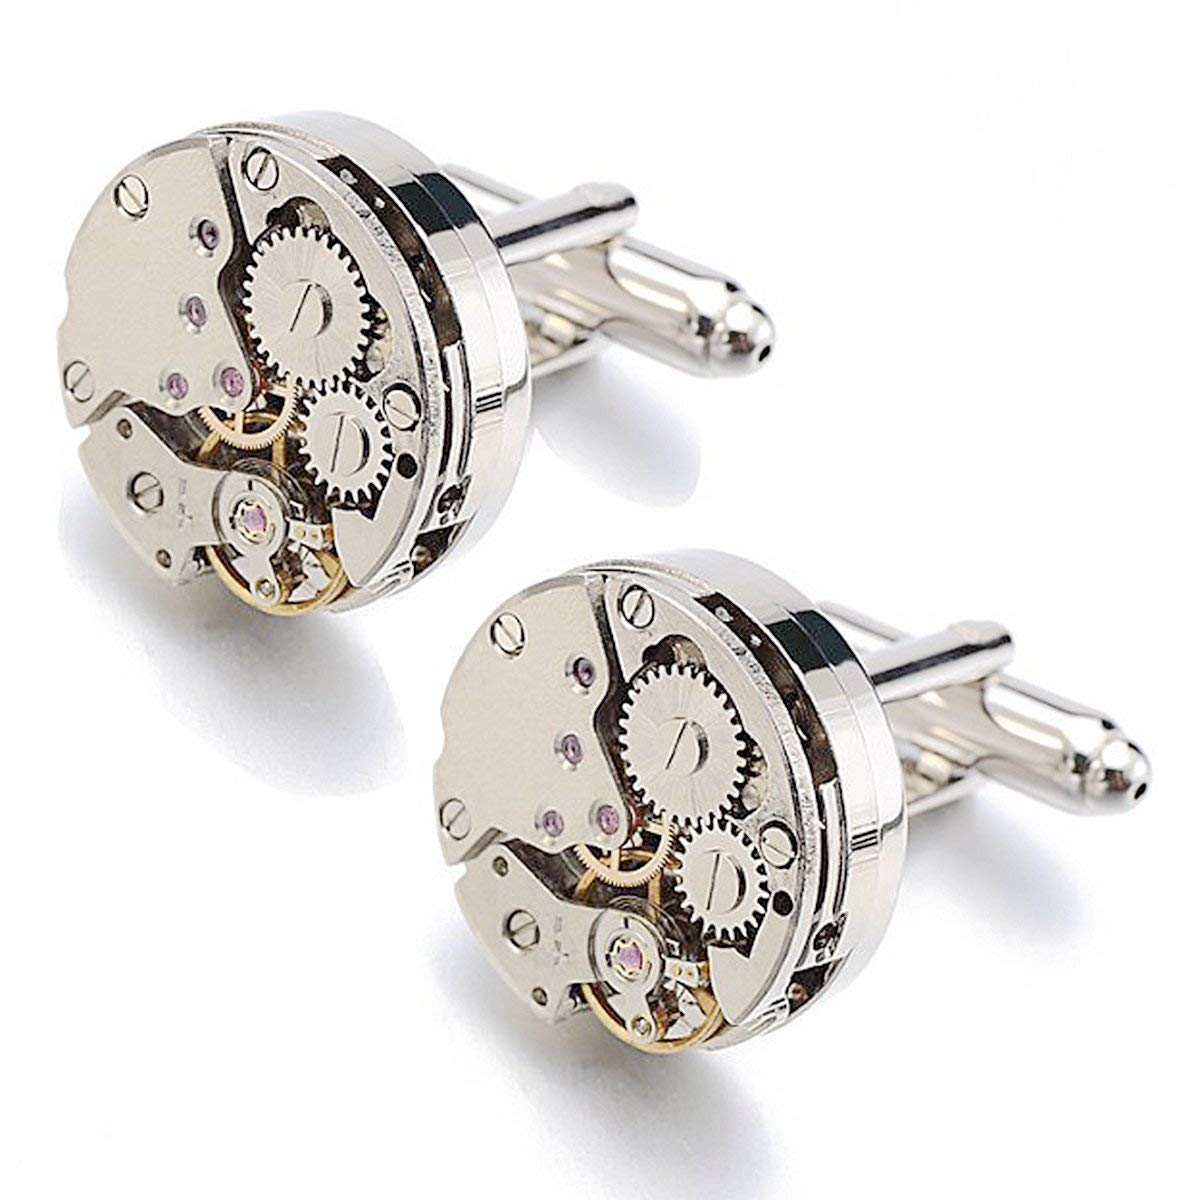 RXBC2011 Upgraded Version Deluxe Steampunk Watch Mens Vintage Watch Movement Shape Cufflinks Come in an Elegant Storage Display Box (No GIFTBOX)